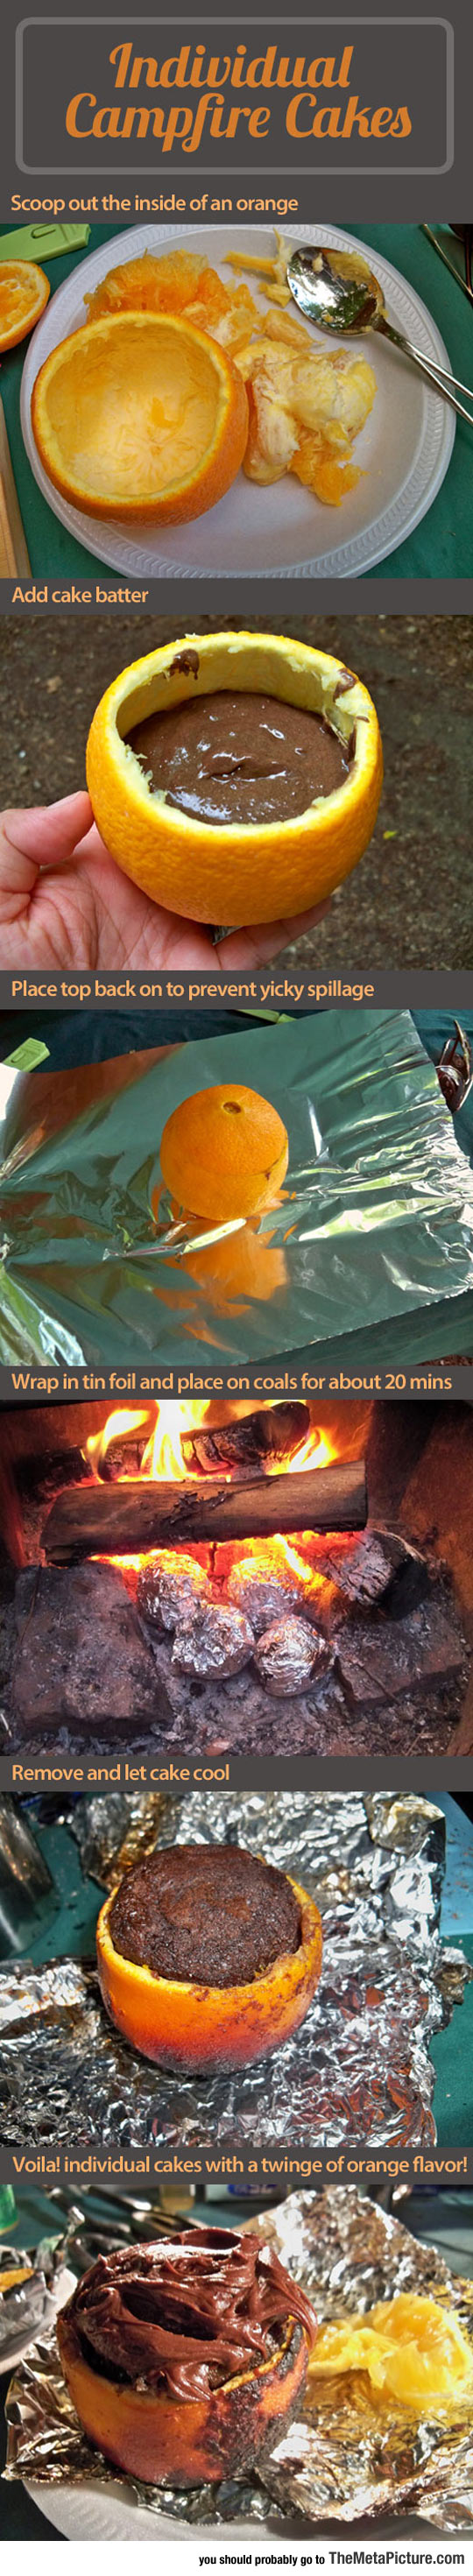 Oranges, Fire And Pure Deliciousness